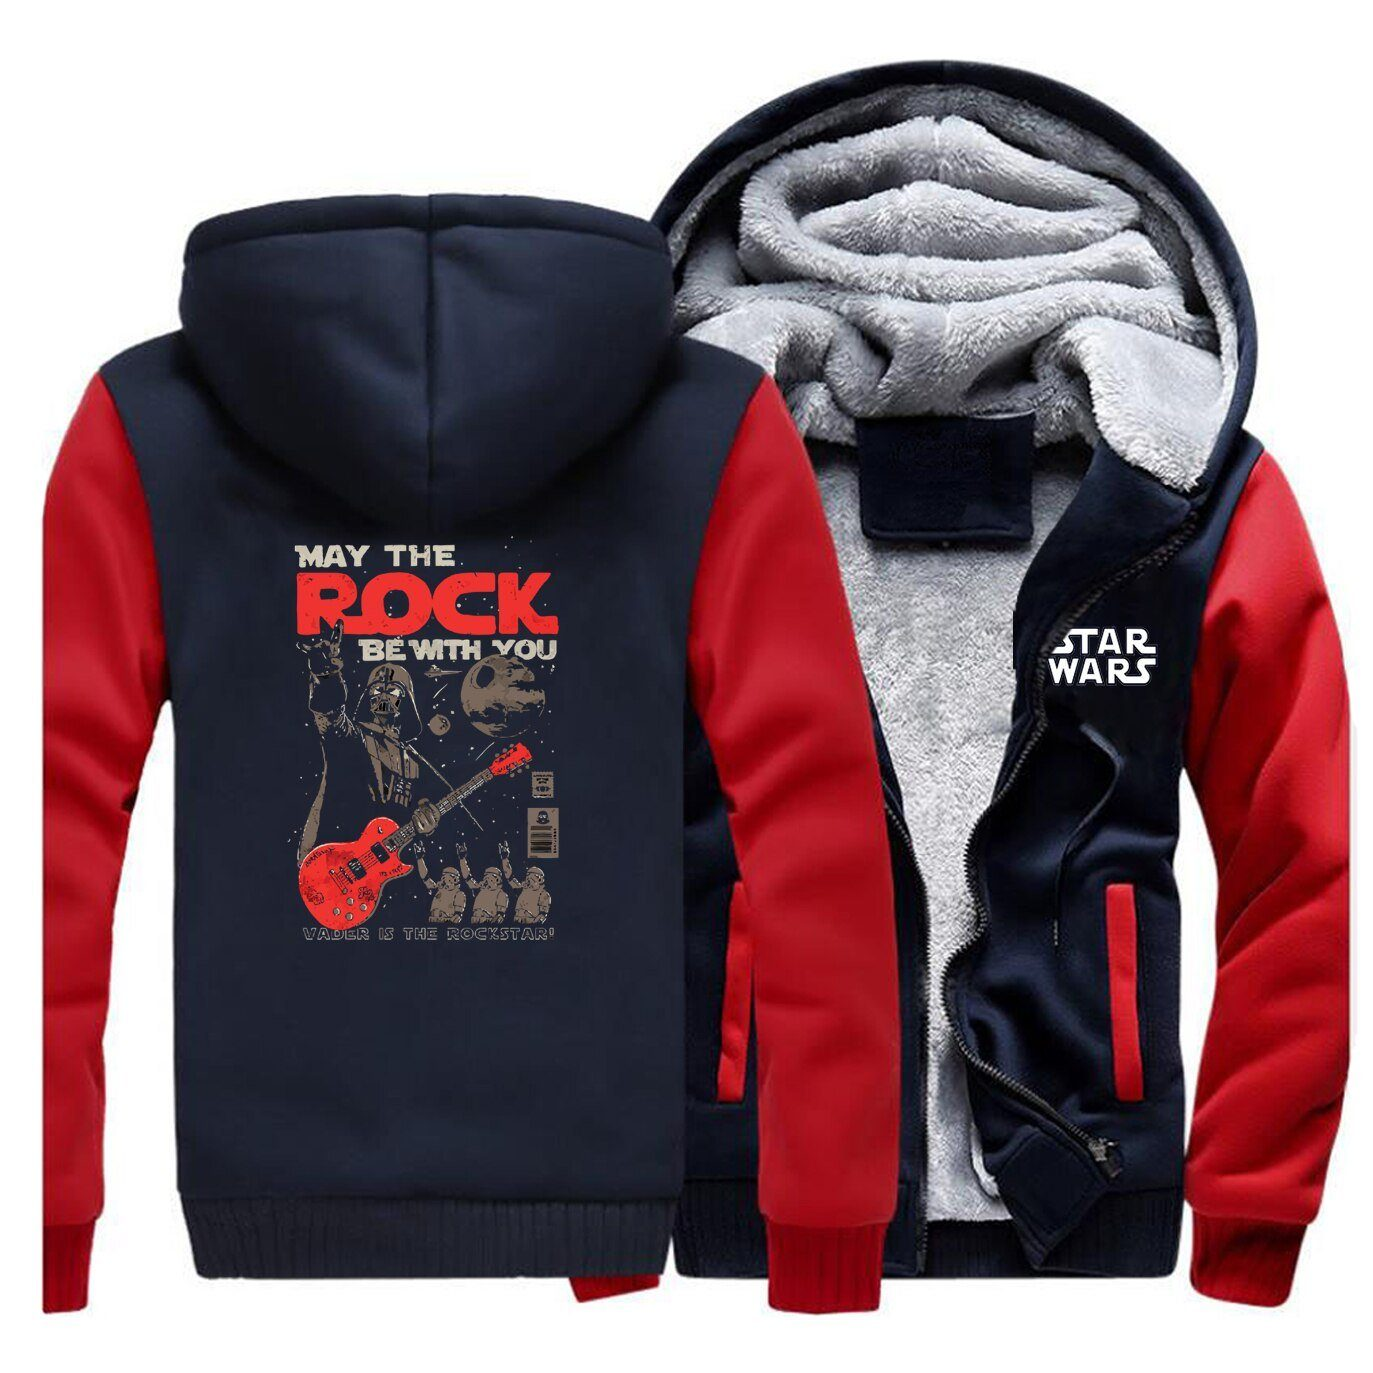 Veste Star Wars<br> Vador Rock - Yoda Shop